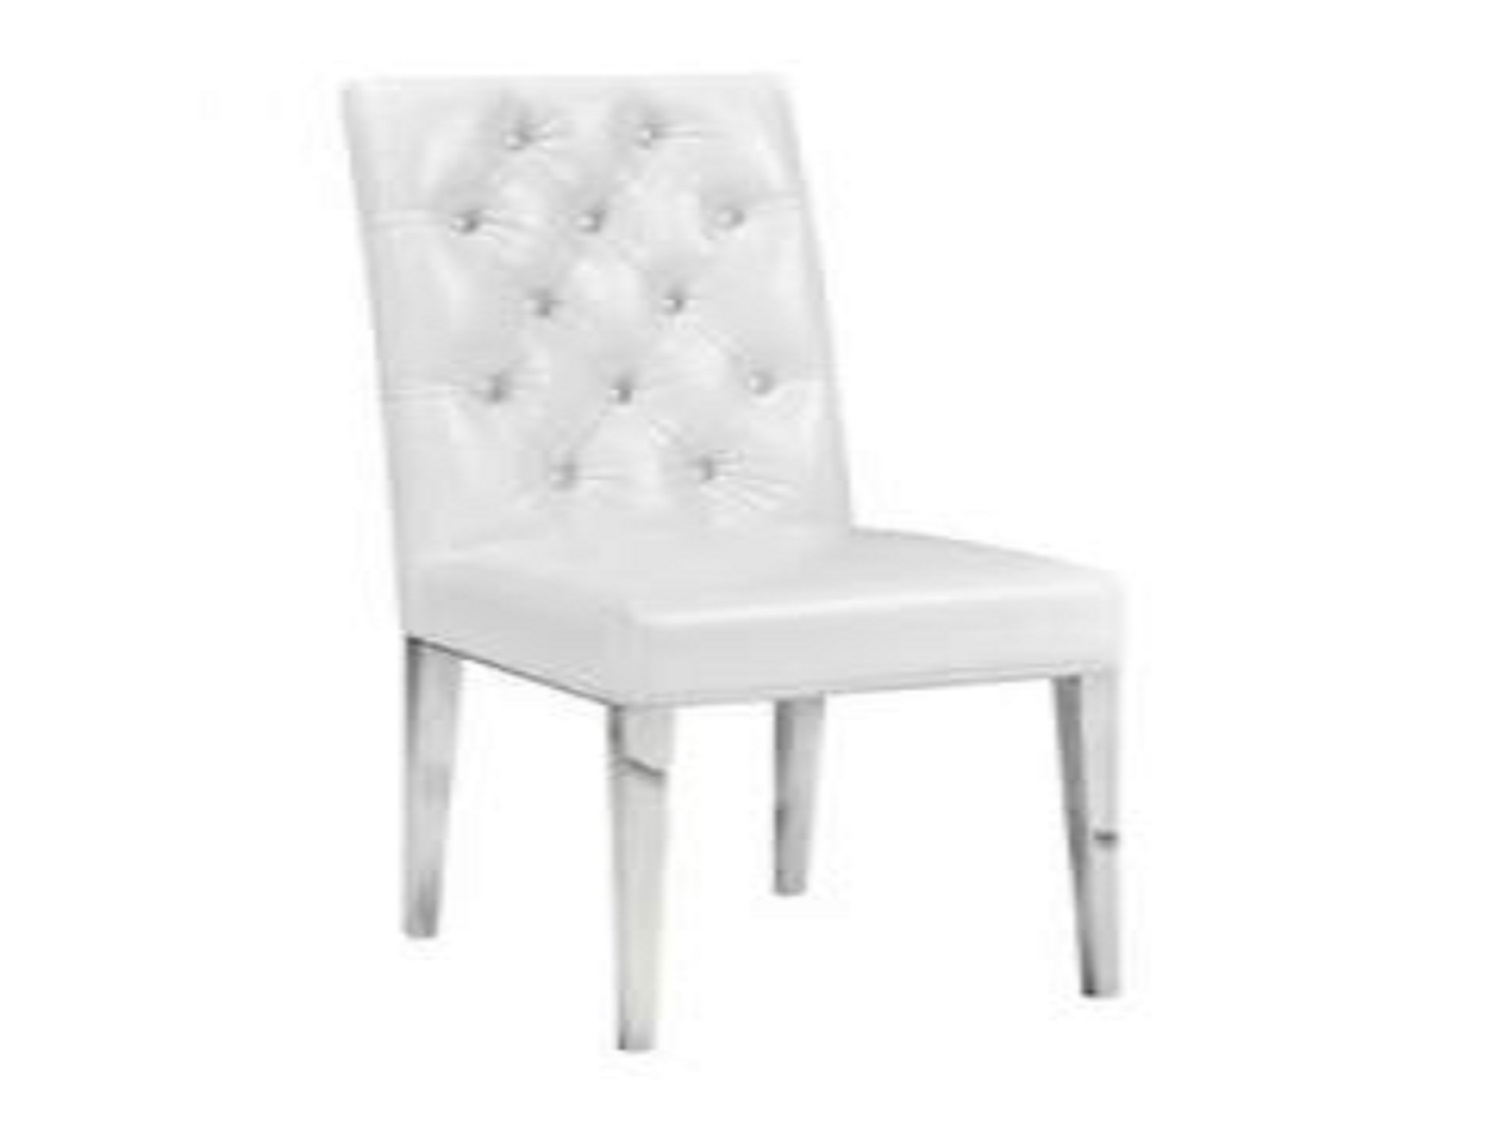 Magnificent Leslie White Leatherette Dining Chair Gy 282 Dining Chairs Uwap Interior Chair Design Uwaporg